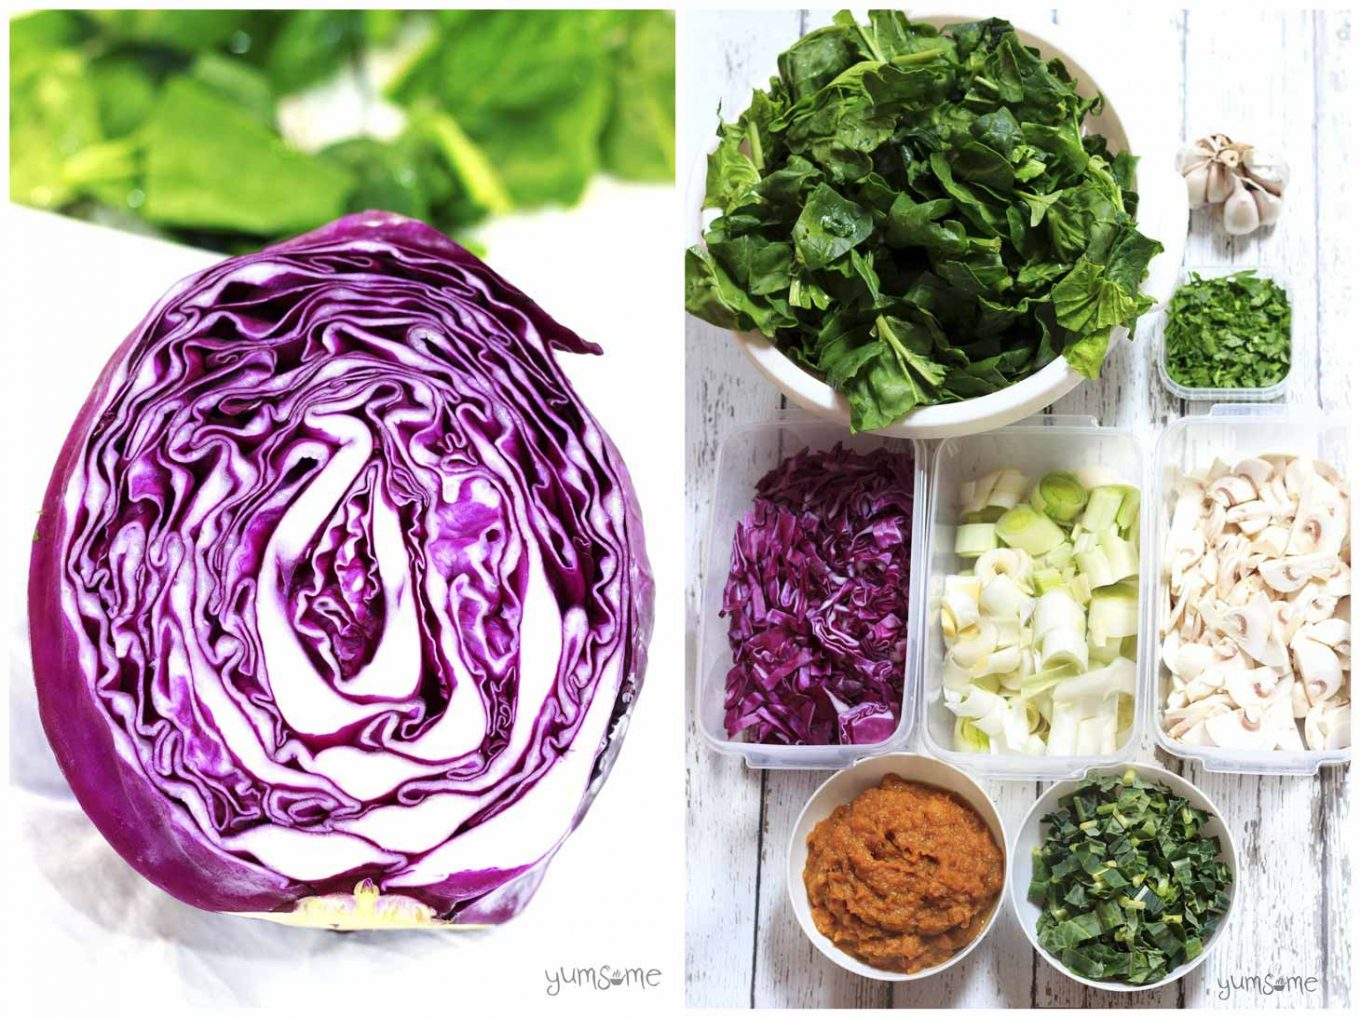 A red cabbage, plus various other ingredients for making vegan red cabbage stuffing.